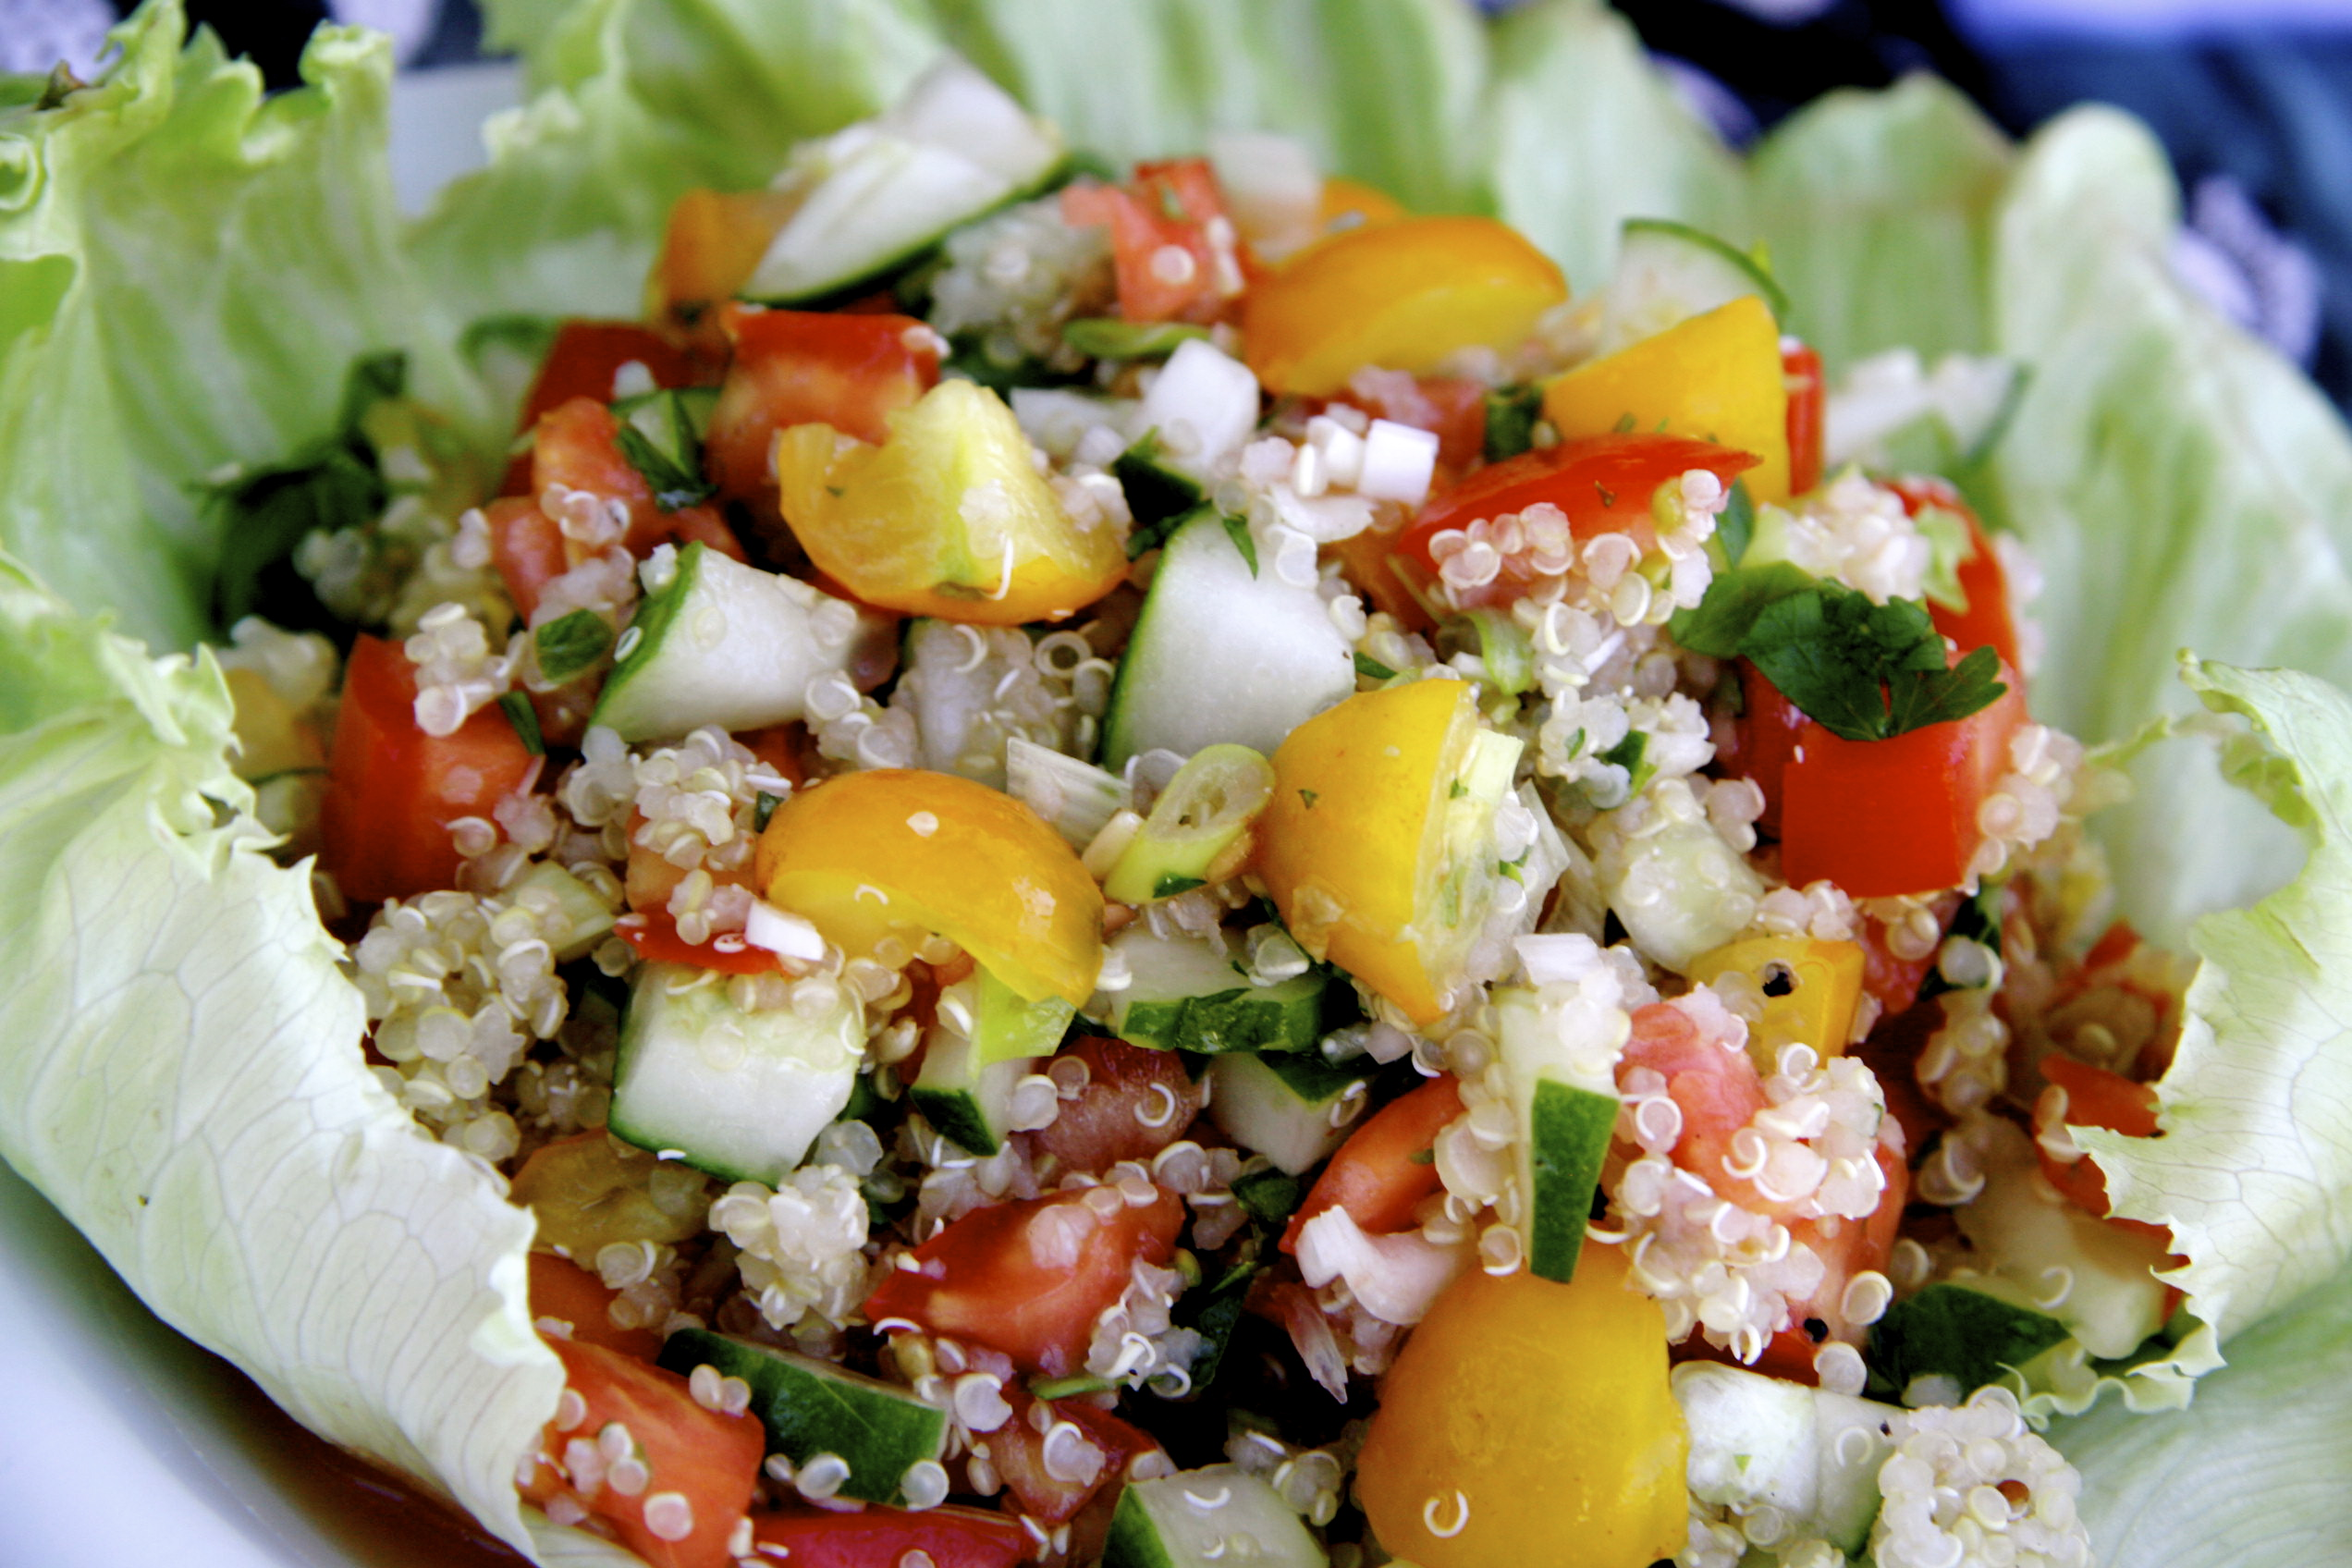 Tropical Spicy Quinoa Tabbouleh Recipe - Pick Up The Fork